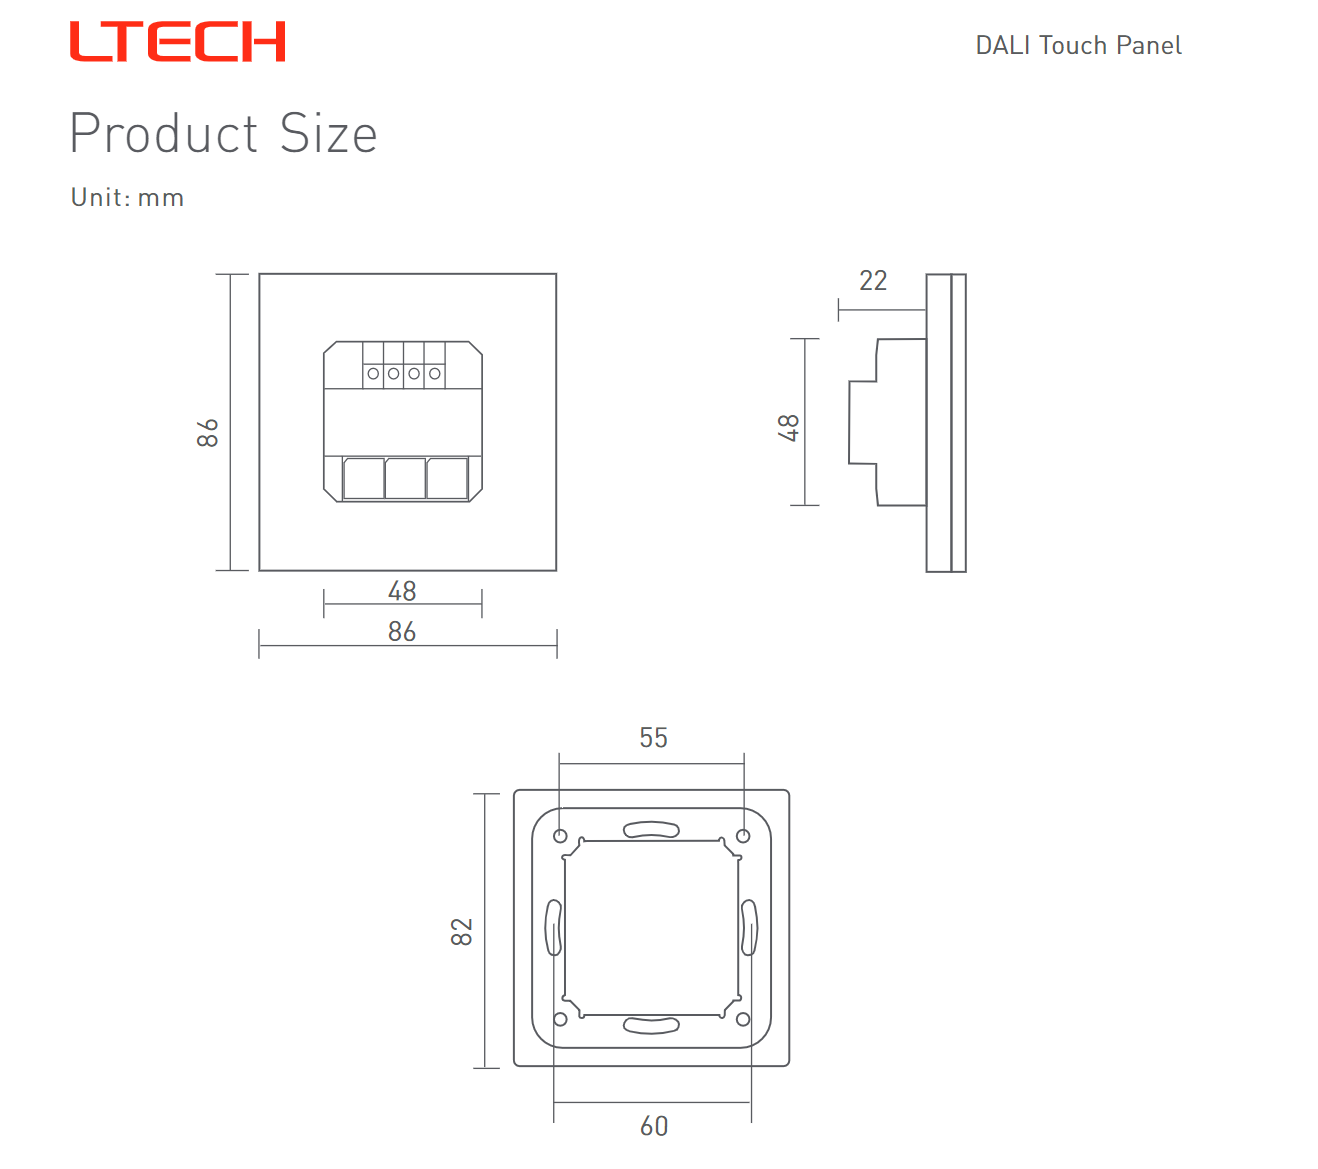 Ltech_EDT2_DALI_CT_Touch_Panel_Master_Led_Controller_4